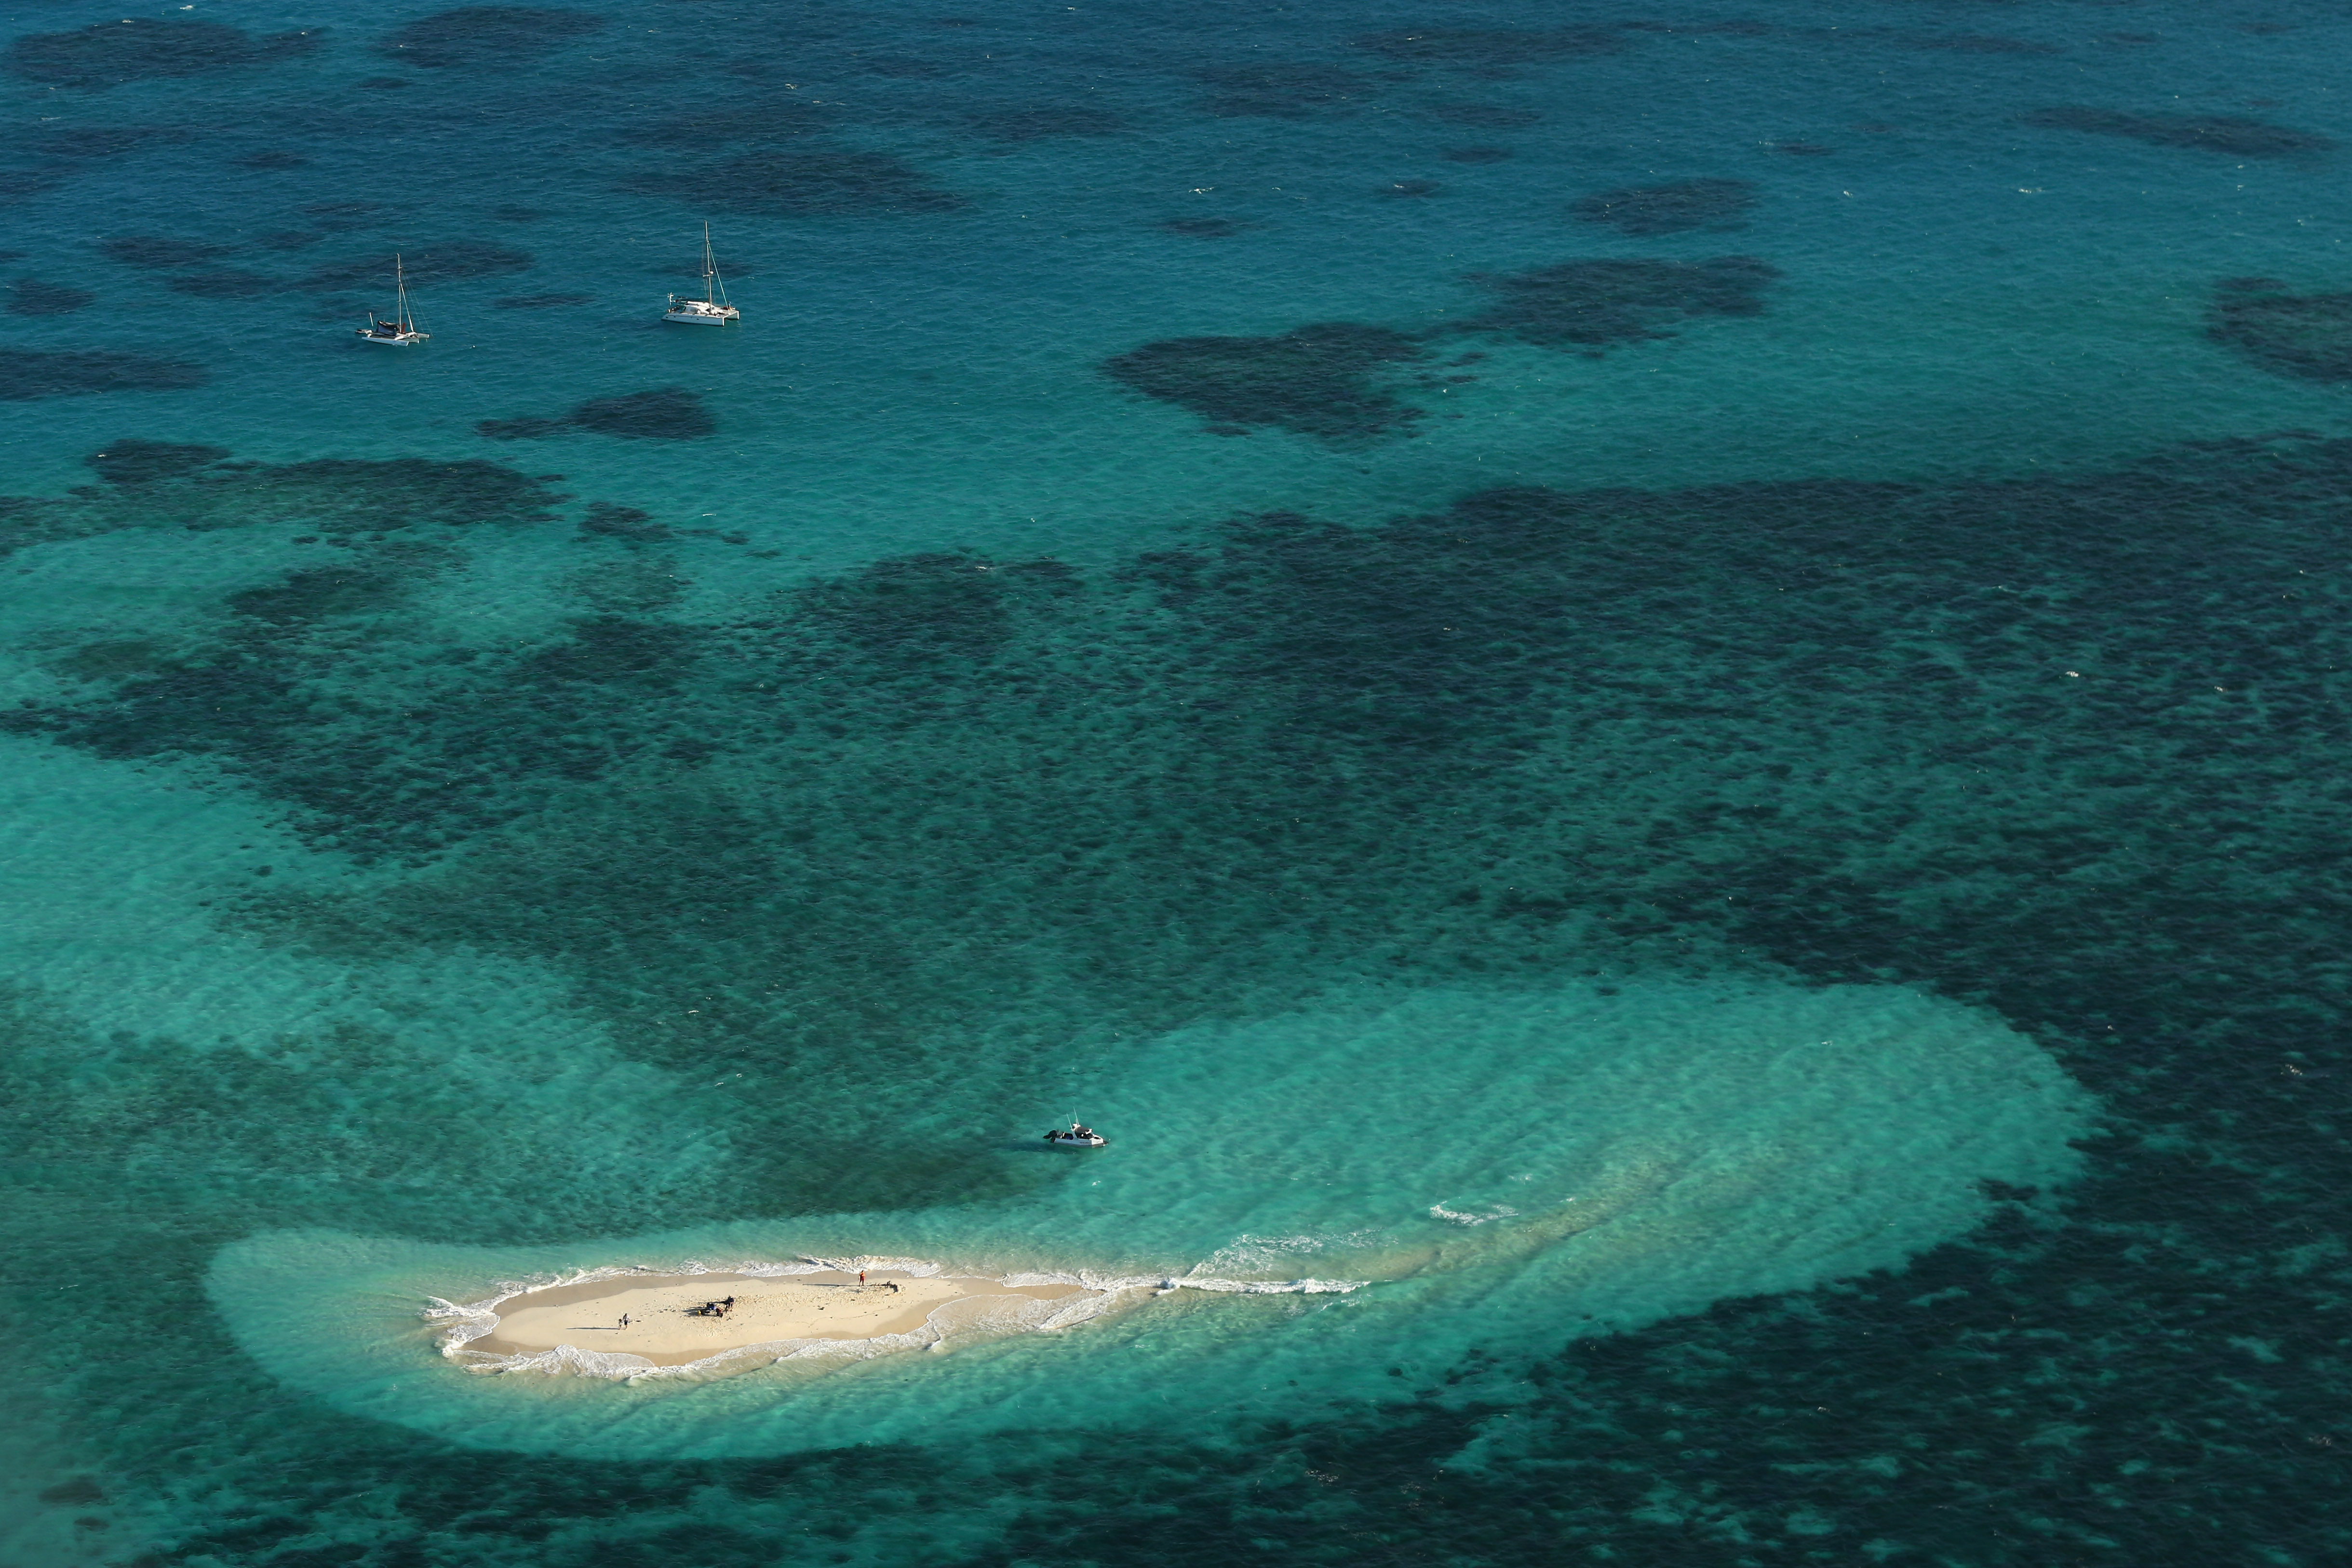 Great Barrier Reef Has Been Hiding A Massive New Reef, Australian Scientists Discover